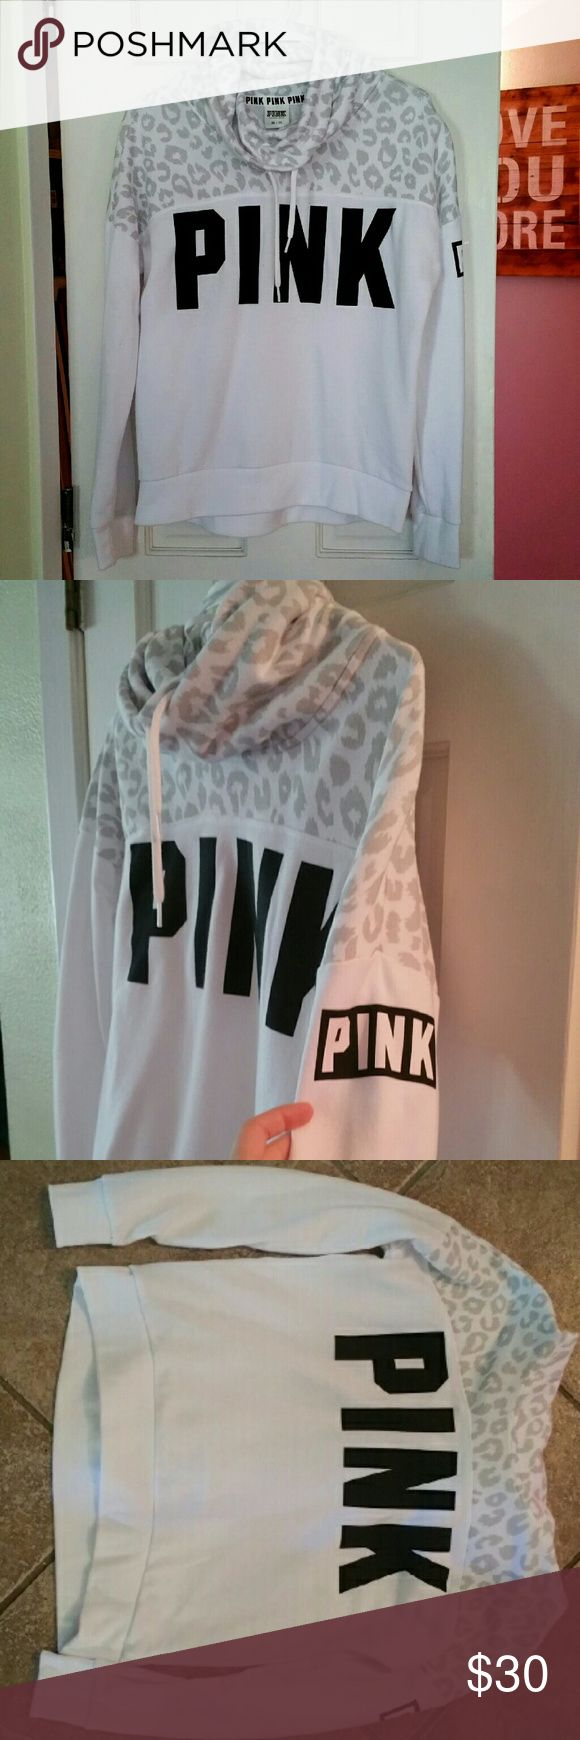 Victoria's Secret Pink cowl neck hoodie!! Victoria's Secret Pink cowl neck hoodie! (: this is a white hoodie with light gray leopard print on the top and black PINK logos on the chest and arm! It's a gorgeous hoodie and looks amazing on! It's only been worn once so it's practically brand new!! No rips tears or stains! Size XS and it has a looser fit. Open to all reasonable offers!! PINK Victoria's Secret Tops Sweatshirts & Hoodies